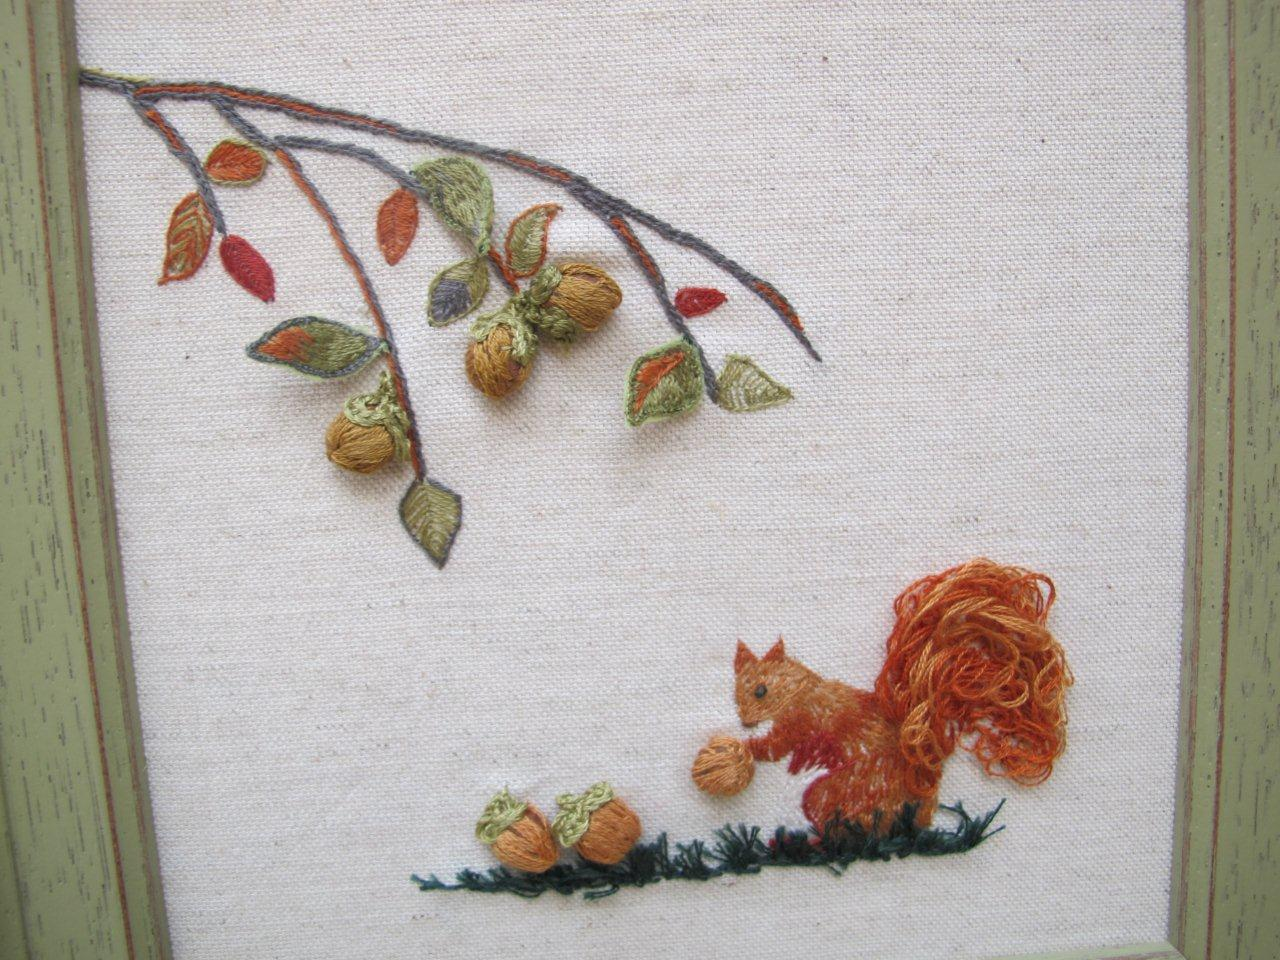 Expo patch 13